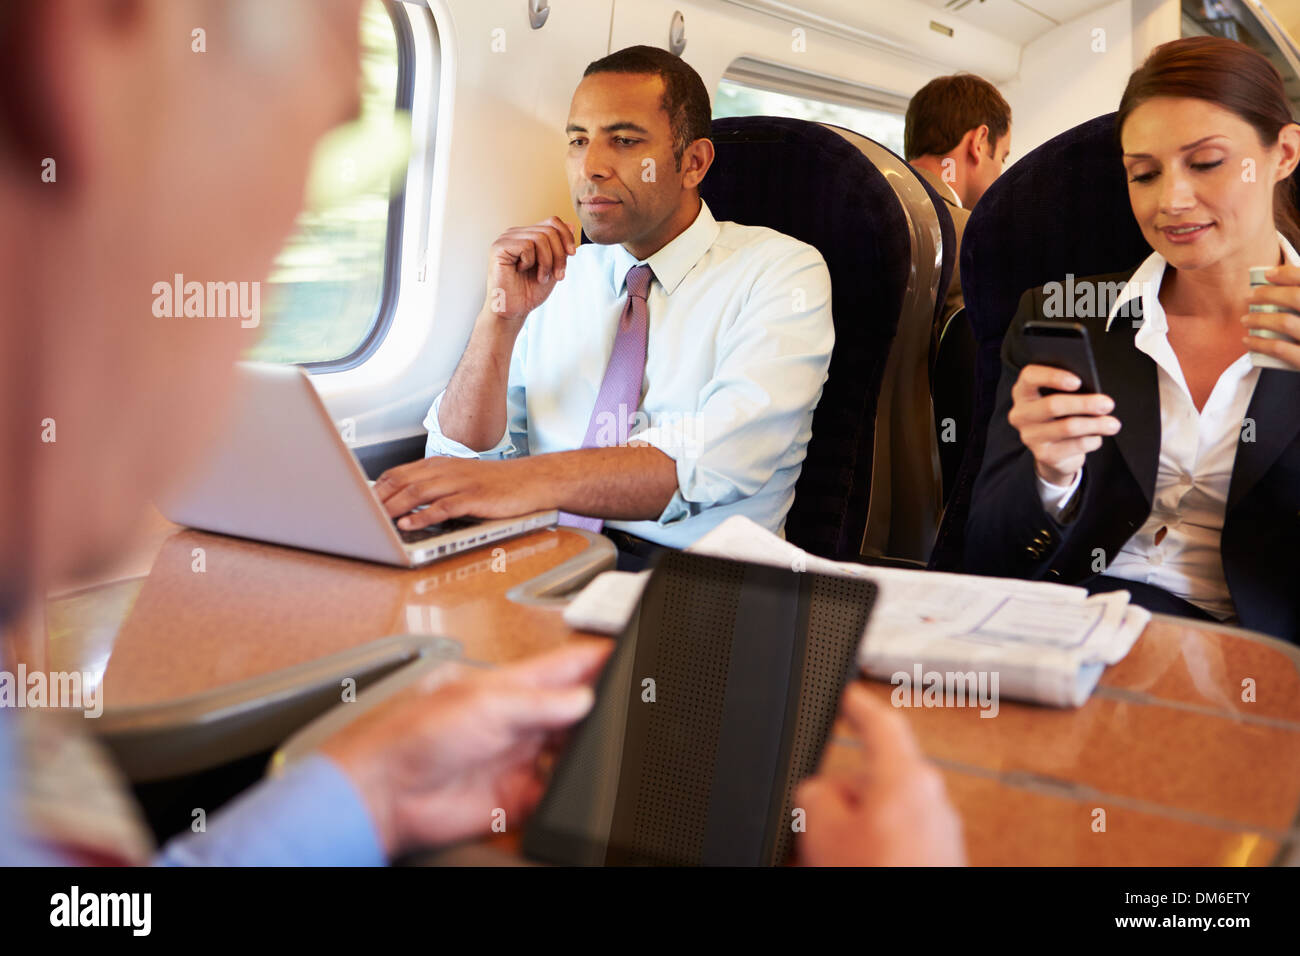 Businesspeople On Train Using Digital Devices - Stock Image